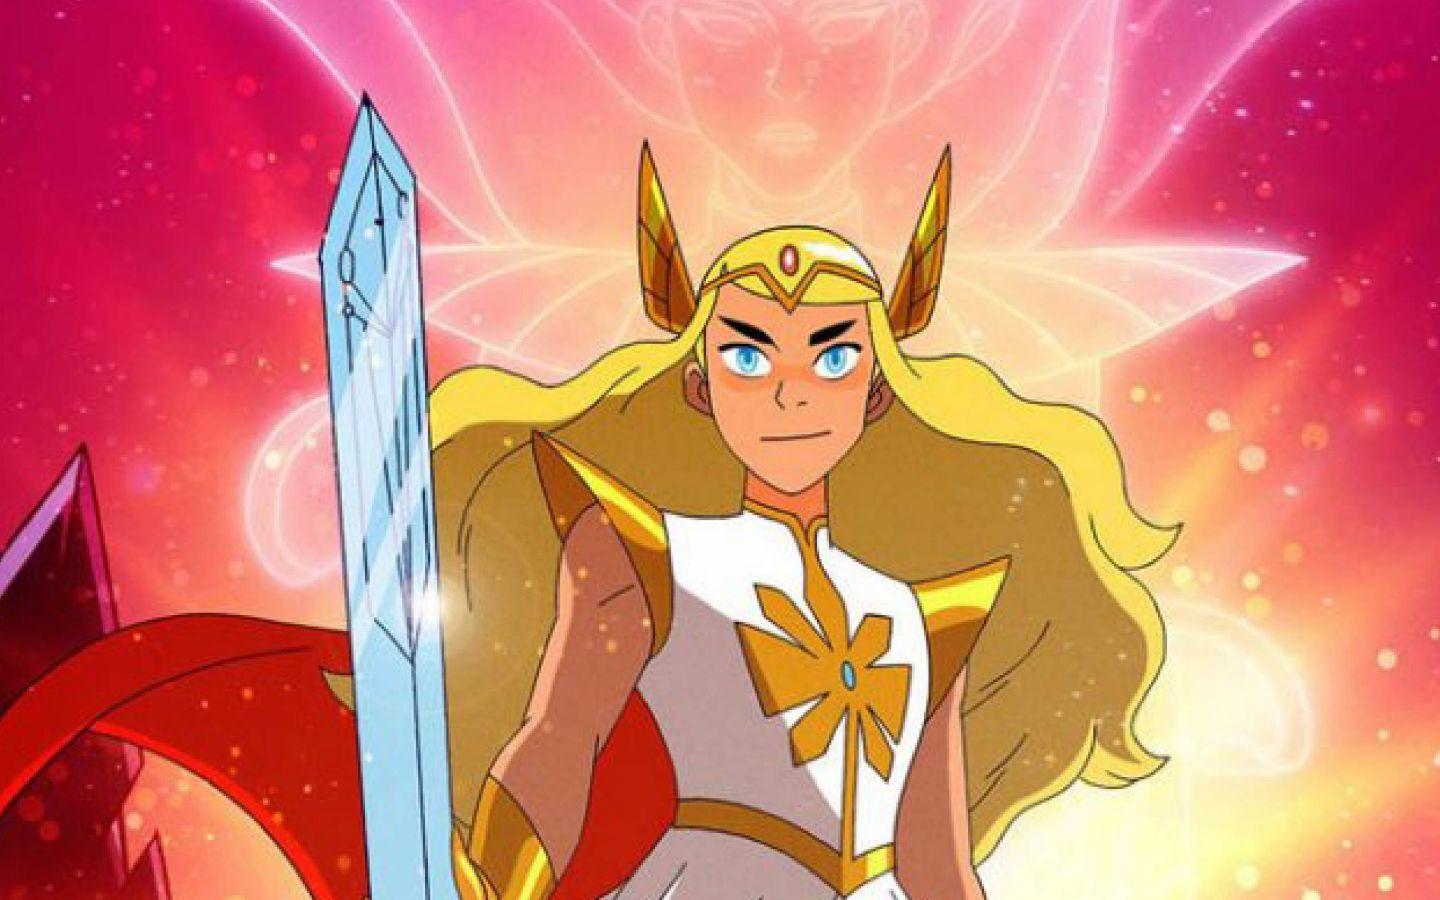 Costumes for Cosplay – She-ra